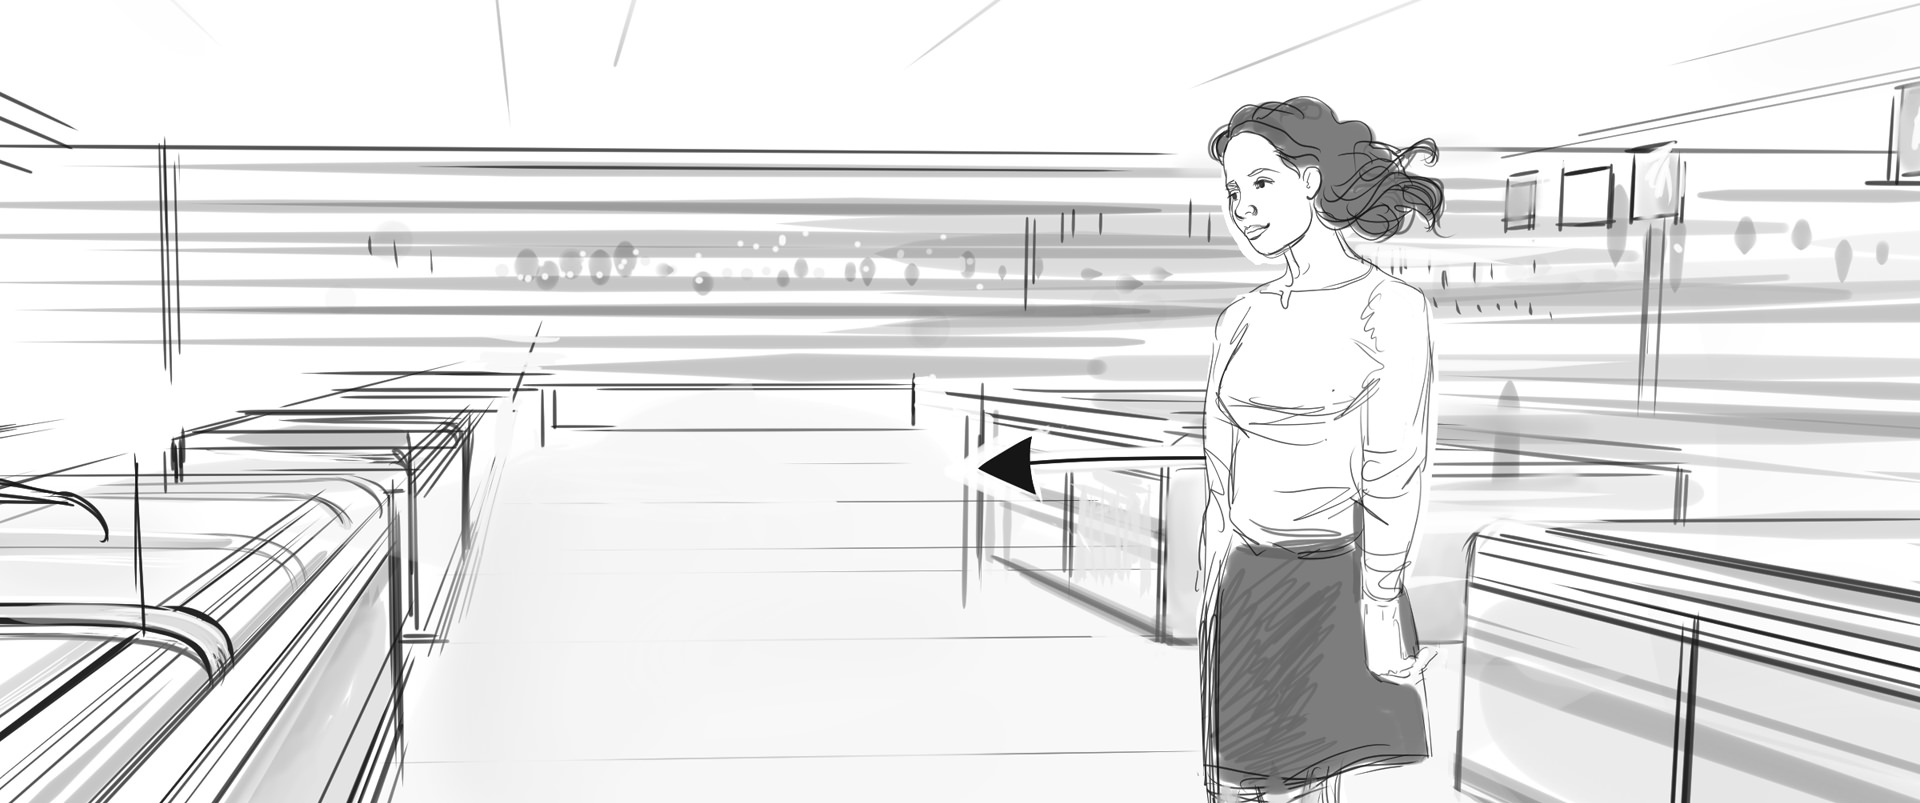 Lidl Vis TV Commercial storyboard 019